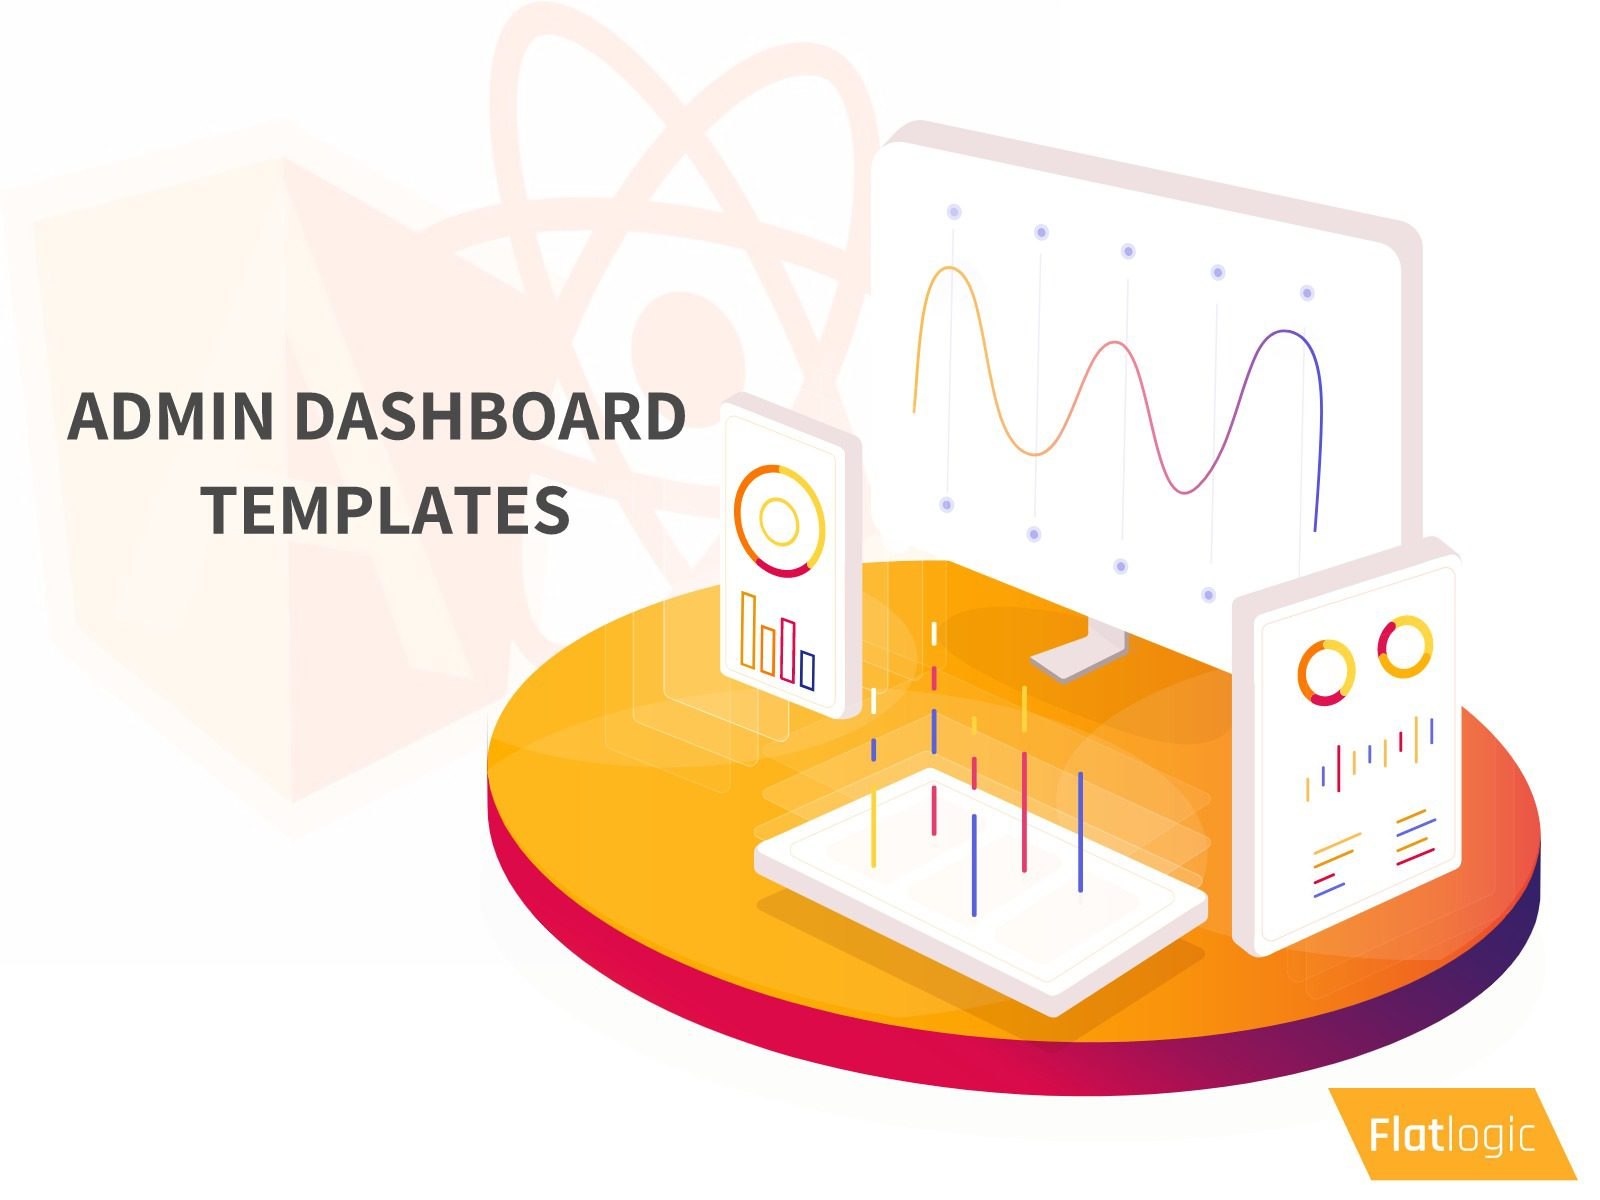 flatlogic admin dashboards